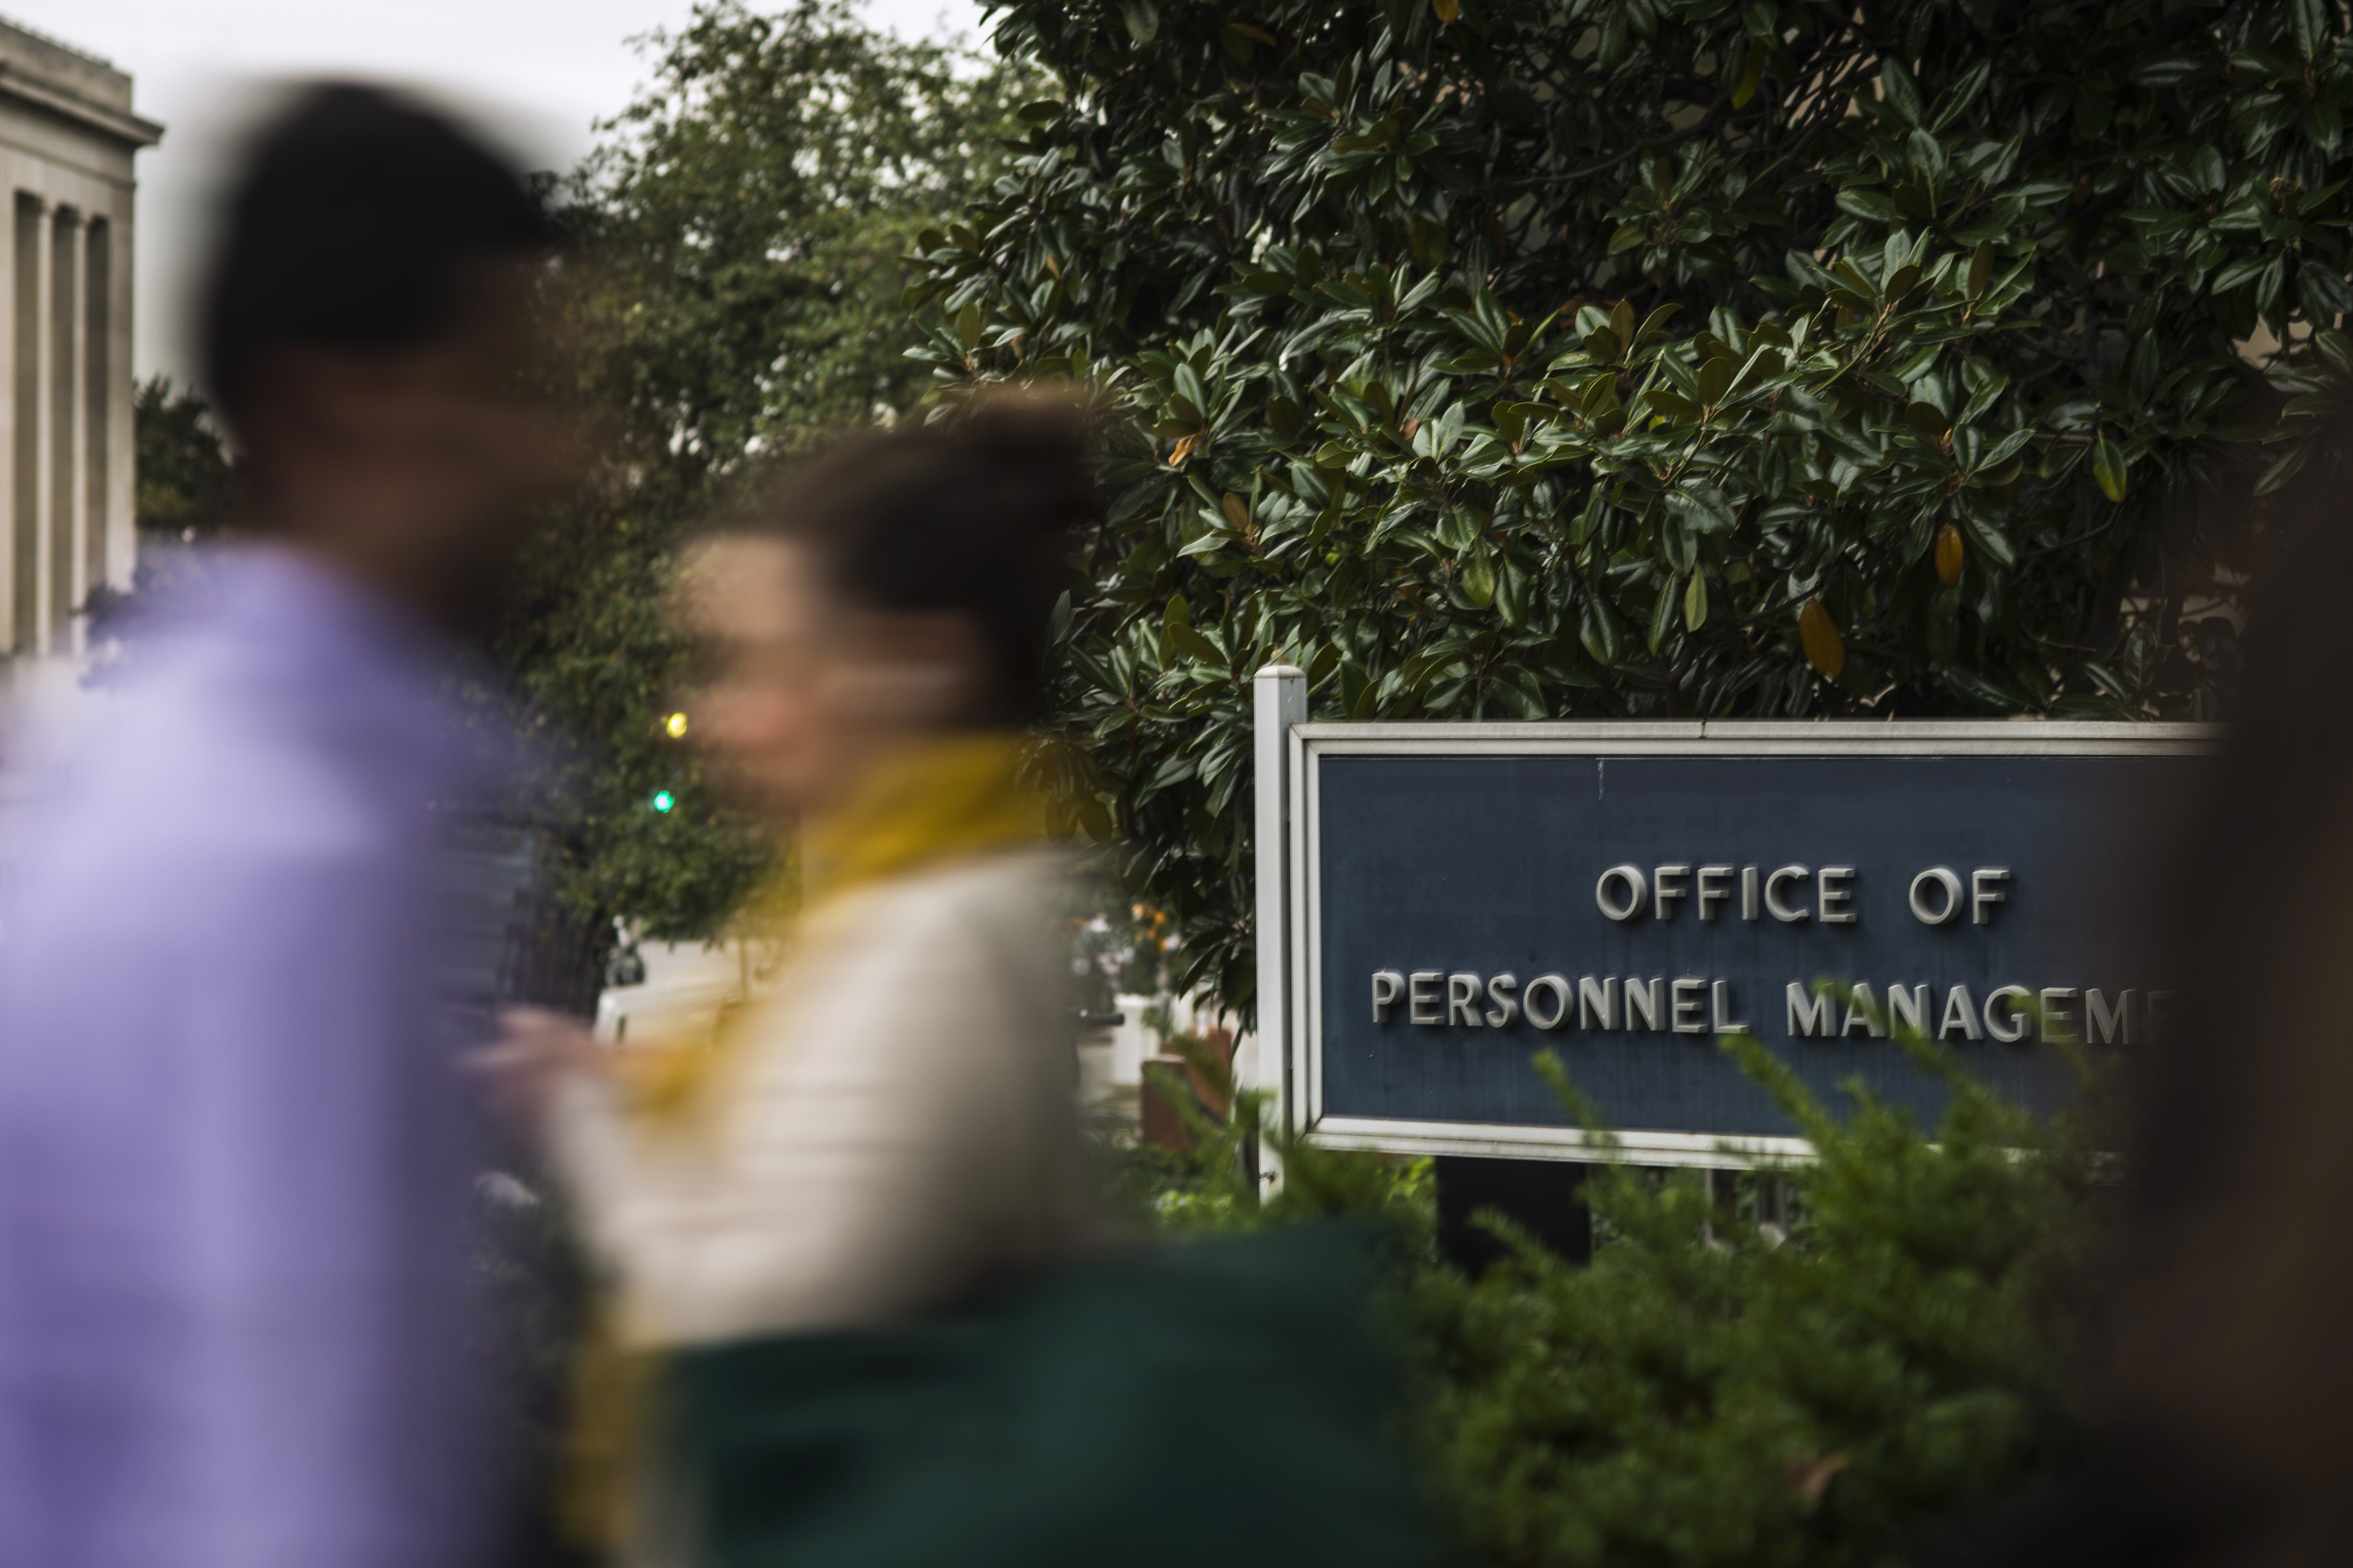 Workers arrive at the Office of Personnel Management in Washington on October 17, 2013.